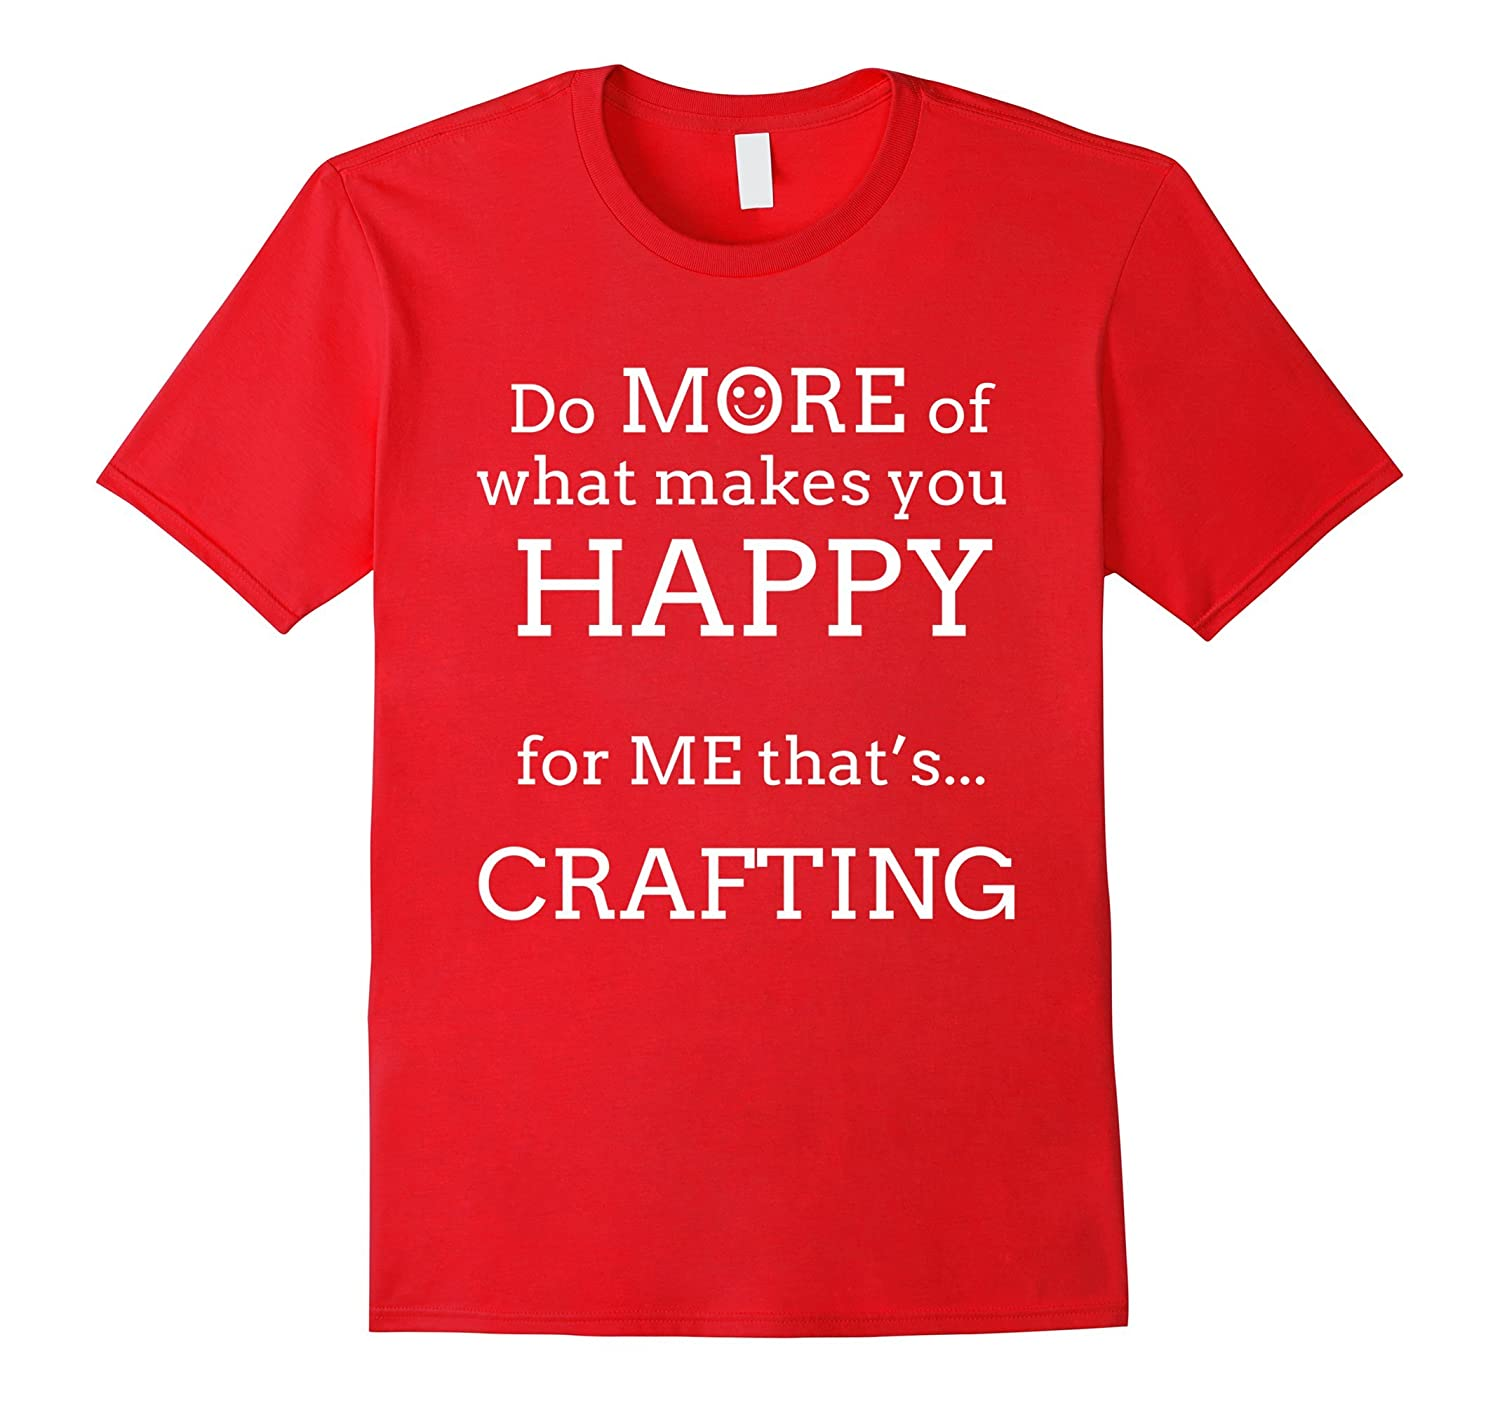 Happy Crafting T Shirts. Gifts for Crafters. Craft More.-4LVS